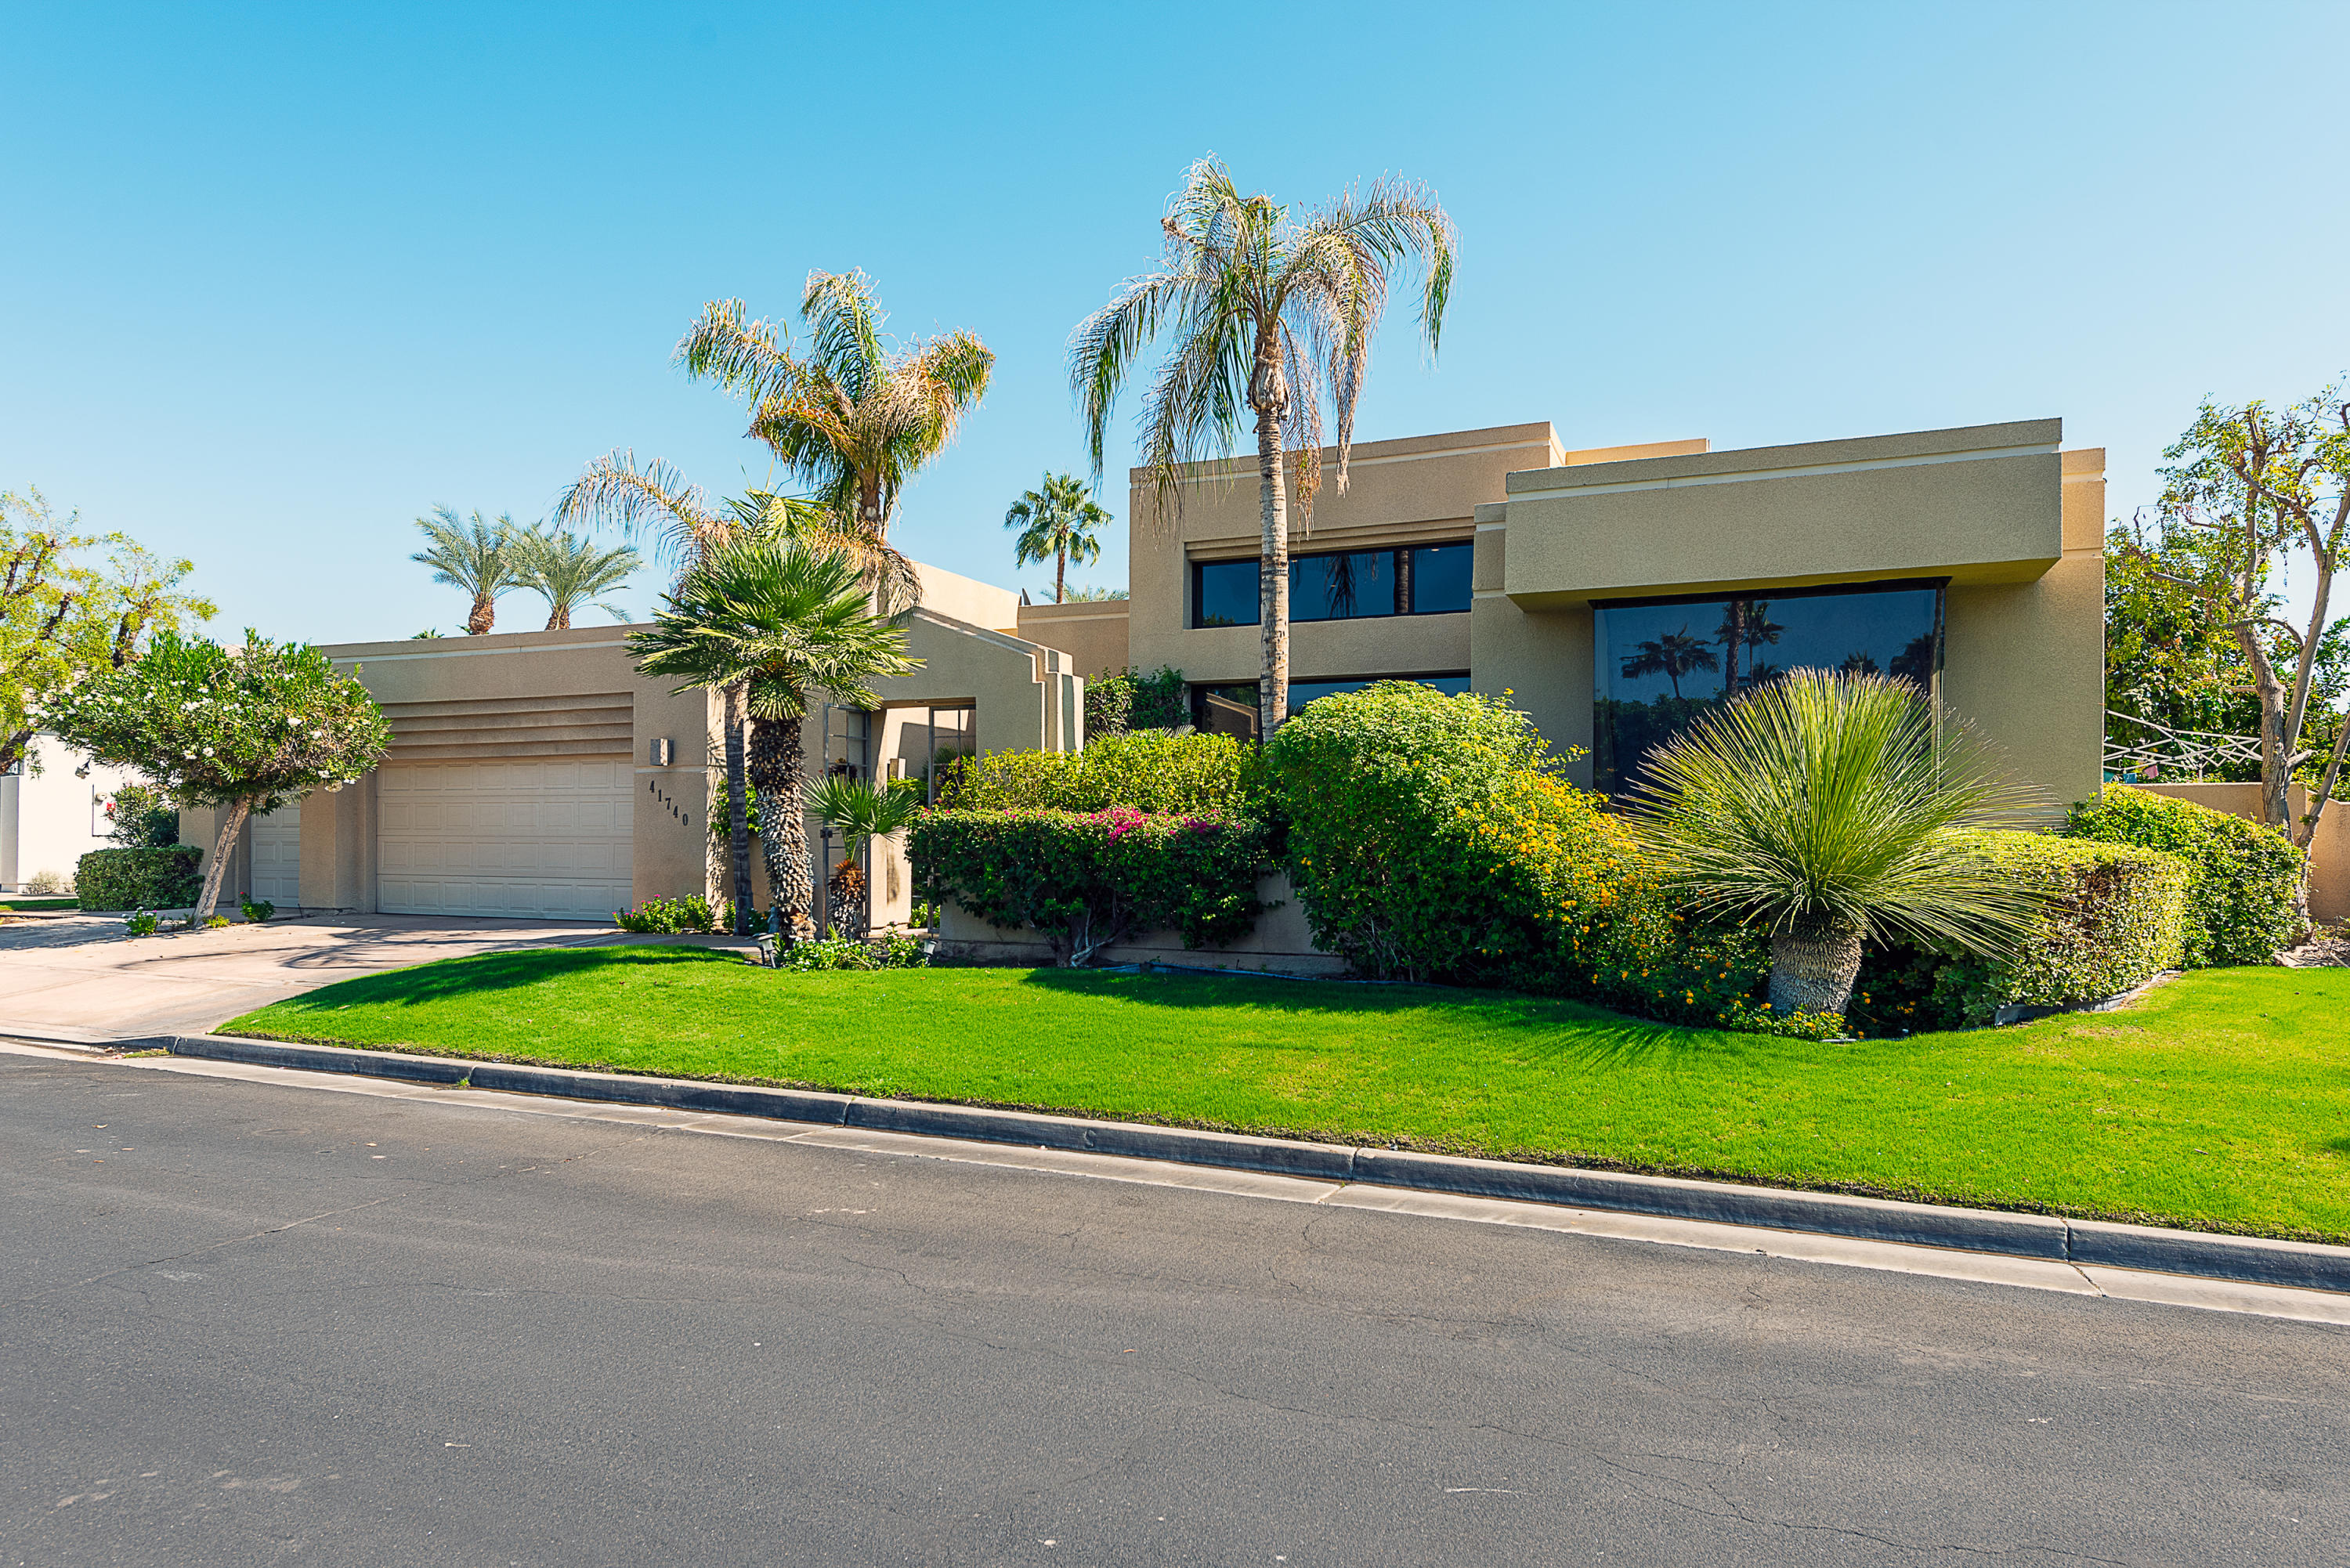 This refurbished Sunterrace home has a wonderful floor plan and is the largest plan in this quality build complex. The grand double door entry into a massive foyer with lighted art nooks set the tone of elegance. Glide into the Living Room and enjoy the 16 ft ceilings and marble fireplace with raised hearth, move to the elegant formal dining room with built in Buffet and serviced by a gourmet kitchen with high end cabinets and appliances. Enjoy the large great room with step down wet bar and 2 separate counters for informal eating and socializing. Also featured are 2 very large Master Suites, both with large walk in closets. The main master has sunken tub with jets & marble counters. All Baths have new glass for the showers. There is a Den or office that  can also be the 4th bedroom when needed. The Private backyard features a large cover patio area for relaxing, has lush landscaping and a newly surfaced  Pebble Tech sparkling pool with water fountain and spa. The peaceful landscaped yard create a lush and tranquil setting in the outdoor spaces.  You will love the free-standing  casita with a built in barbecue & wet bar. This is a great home for entertaining. This is a wonderful controlled gated neighborhood, close to the 10 freeway , nearby shopping on El Paseo, hospitals and all the wonderful restaurants in Palm Desert  and the Golf and Tennis tournaments of Indian Wells and La Quinta. What more could you ask for! Call for appointment for your private showing today.